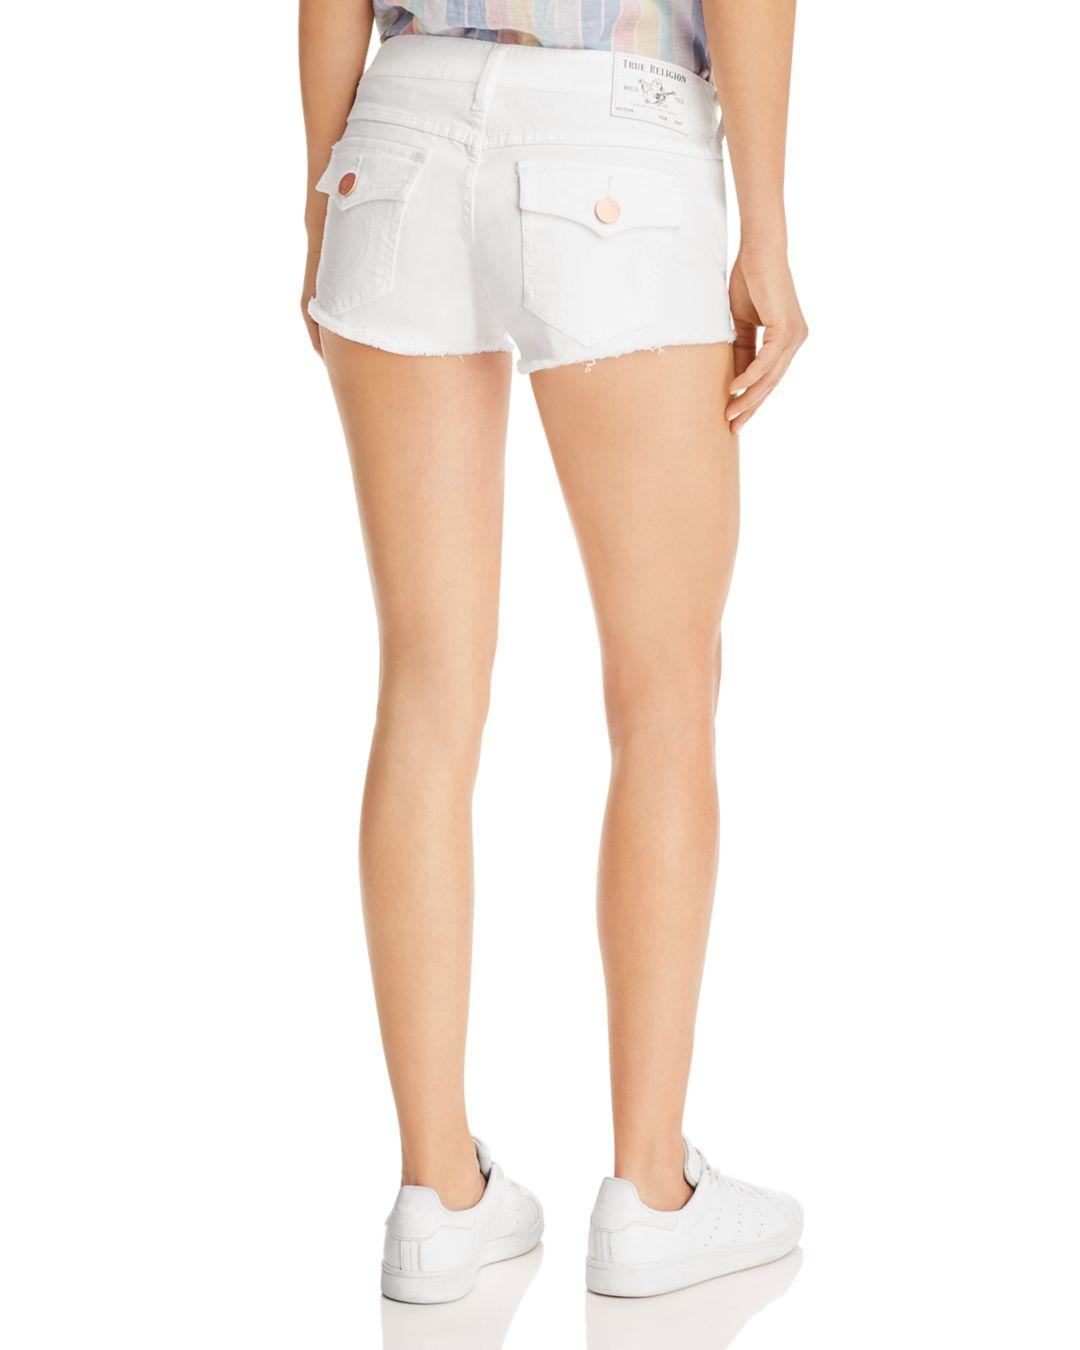 dbf0c68f6210c True Religion Joey Low-rise Denim Shorts In White in White - Lyst